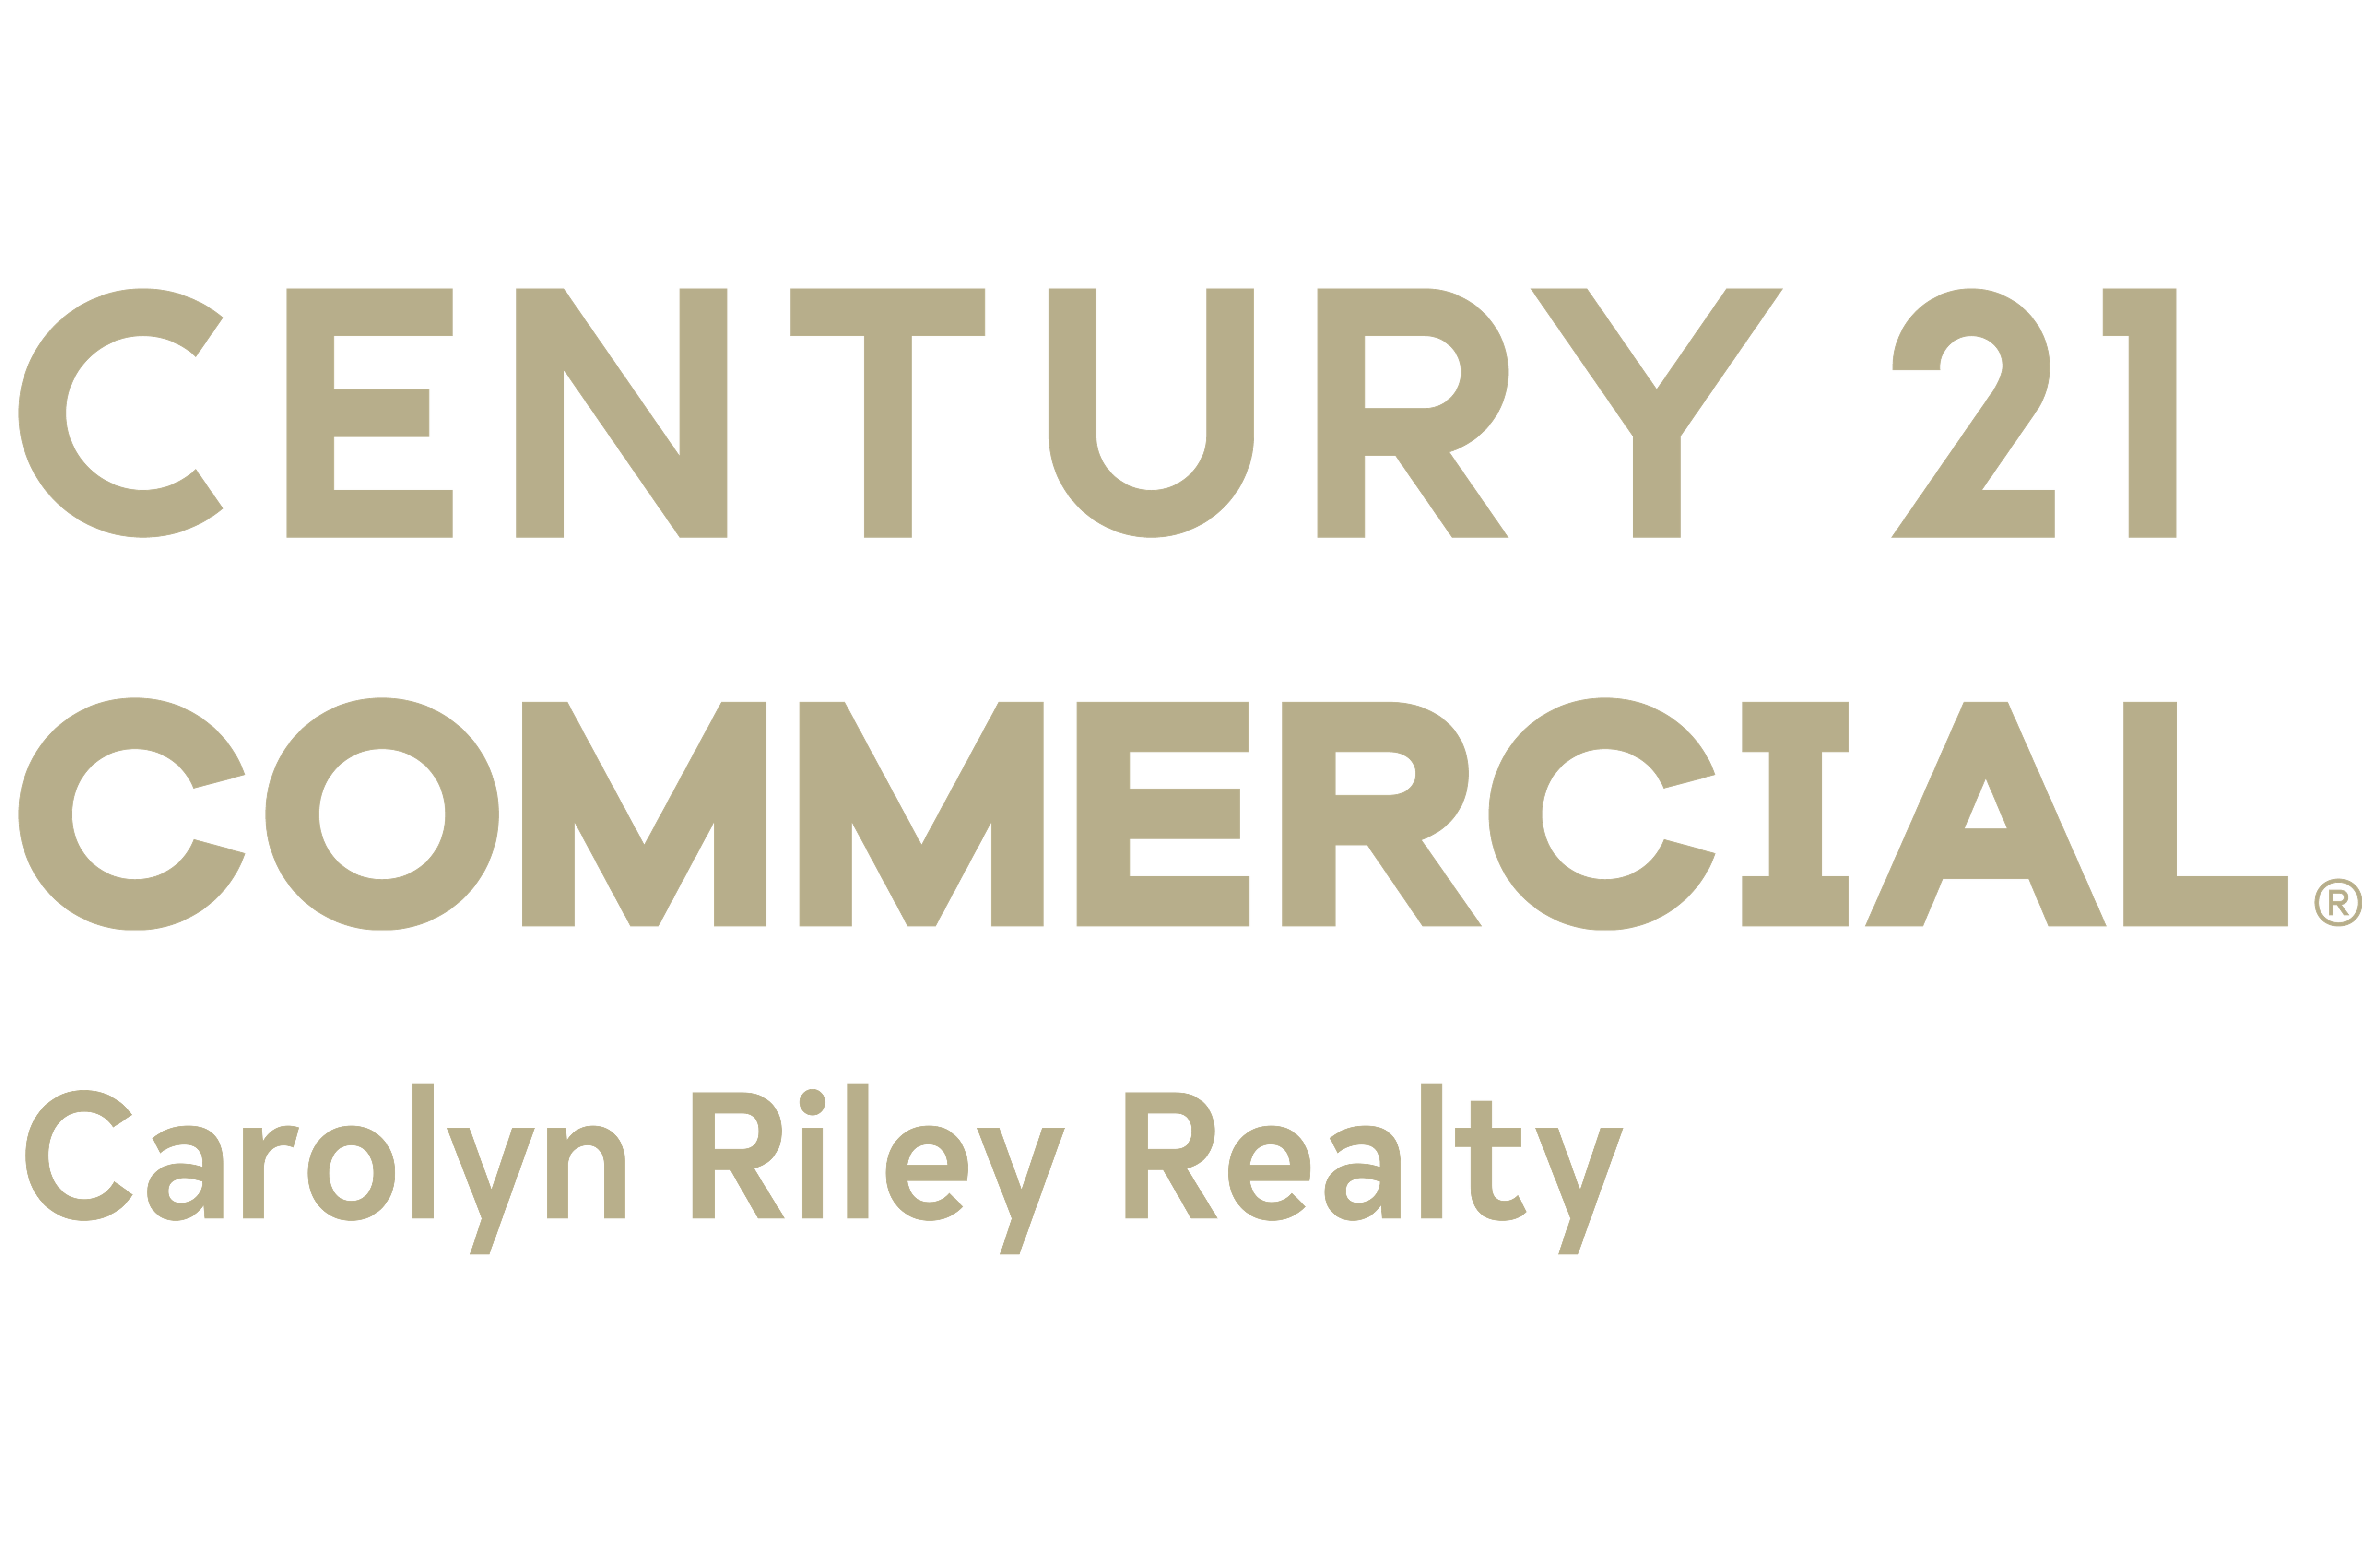 Patrick Riley of CENTURY 21 Carolyn Riley Realty logo